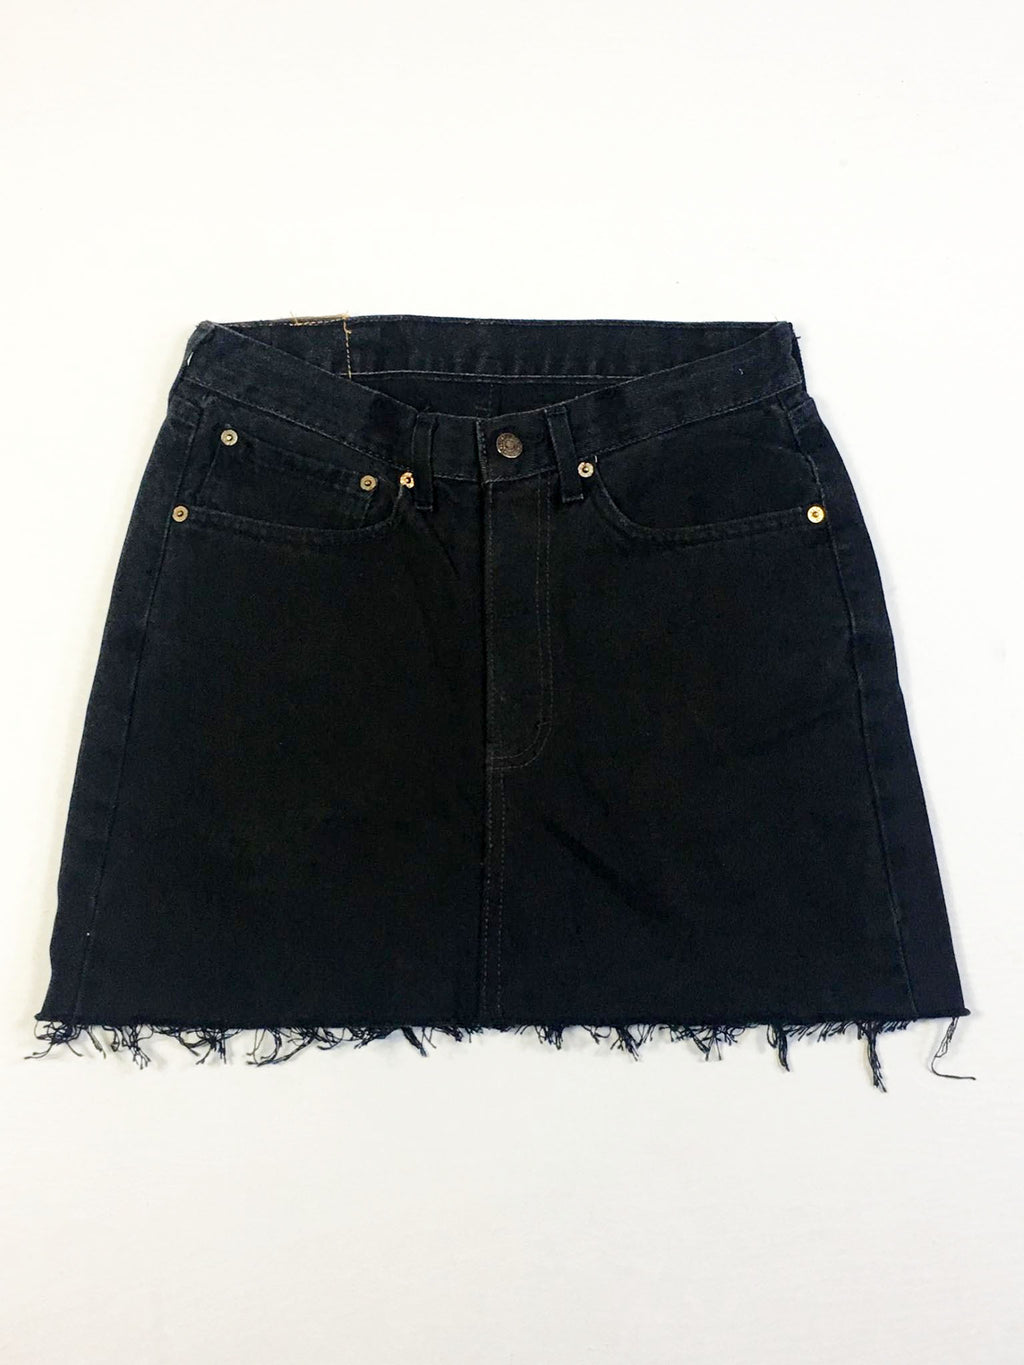 VINTAGE LEVI DENIM SKIRT - STRAIGHT STITCH - BLACK DENIM